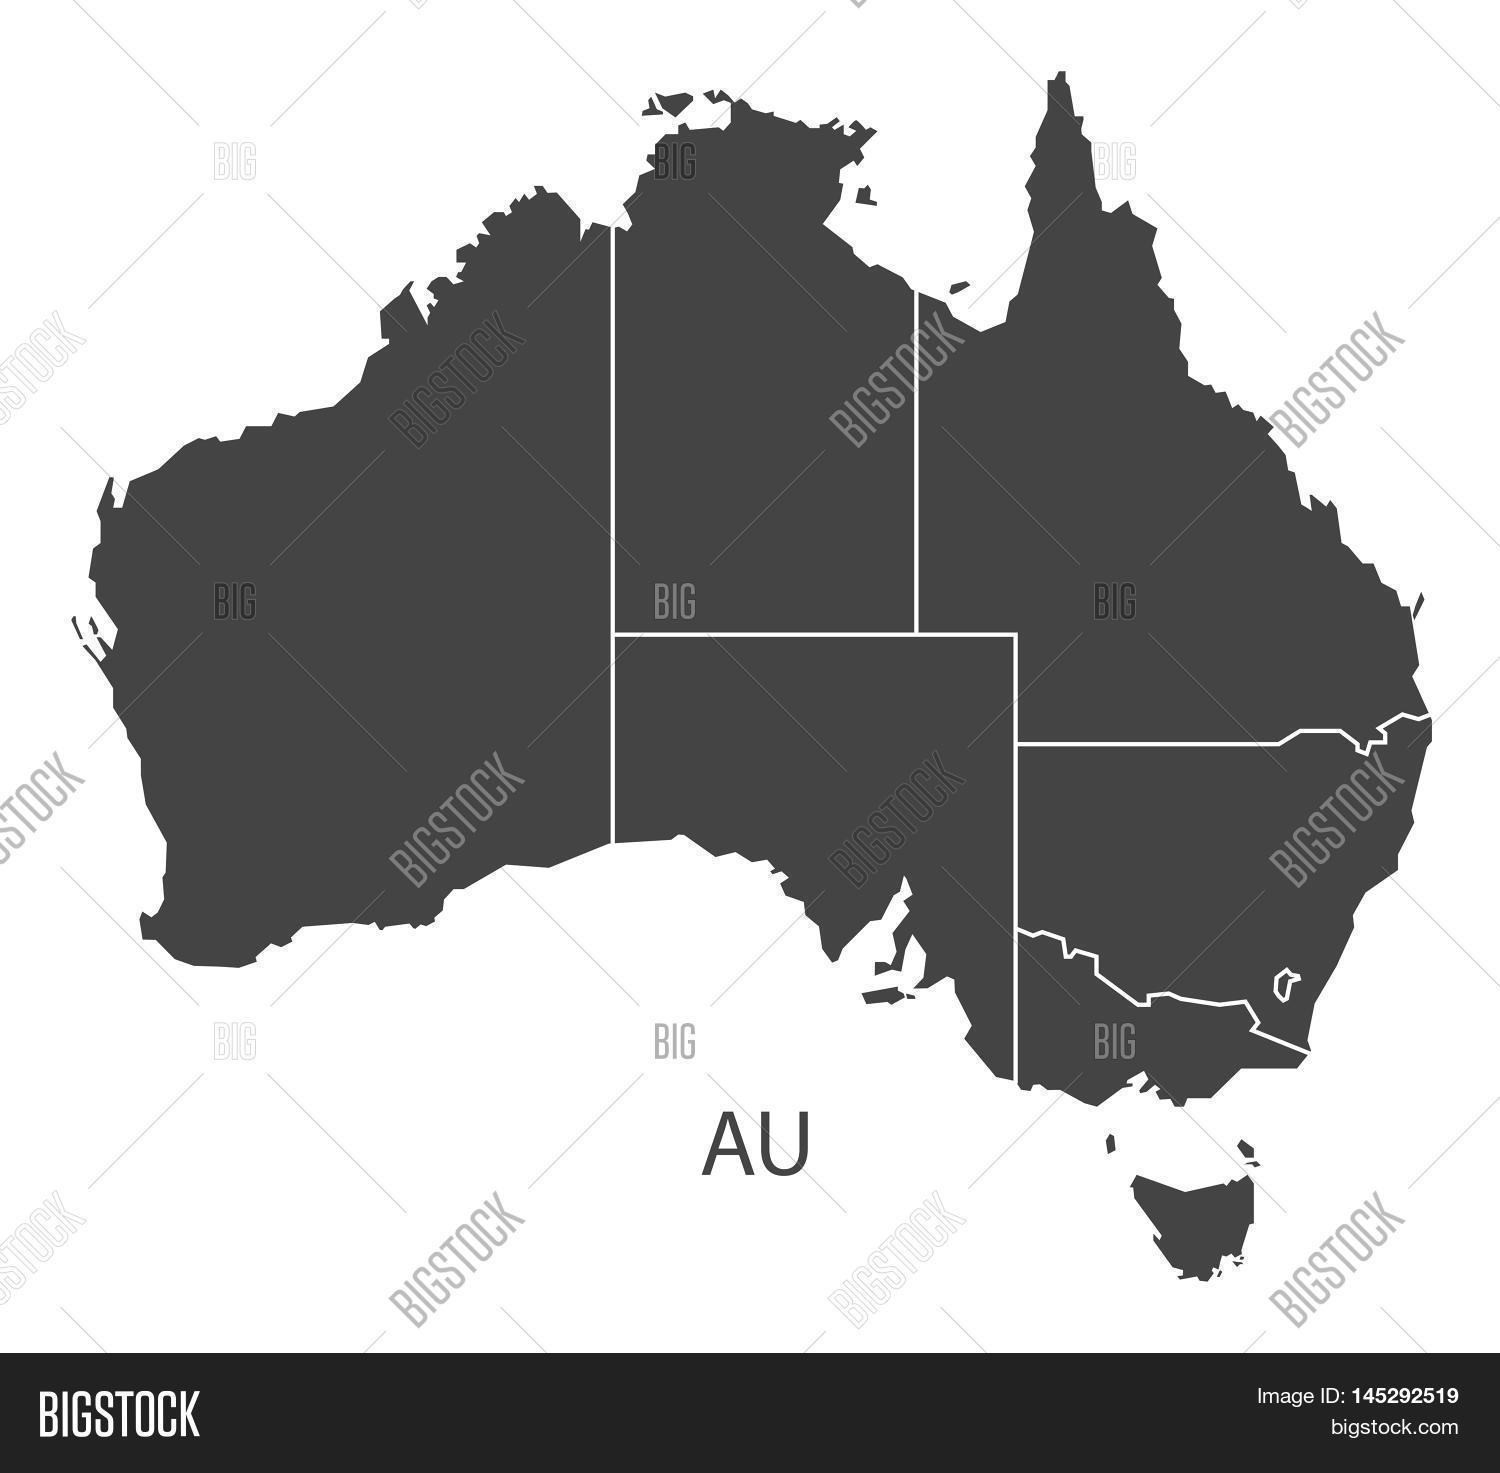 Australia Map Vector With States.Australia Map States Vector Photo Free Trial Bigstock